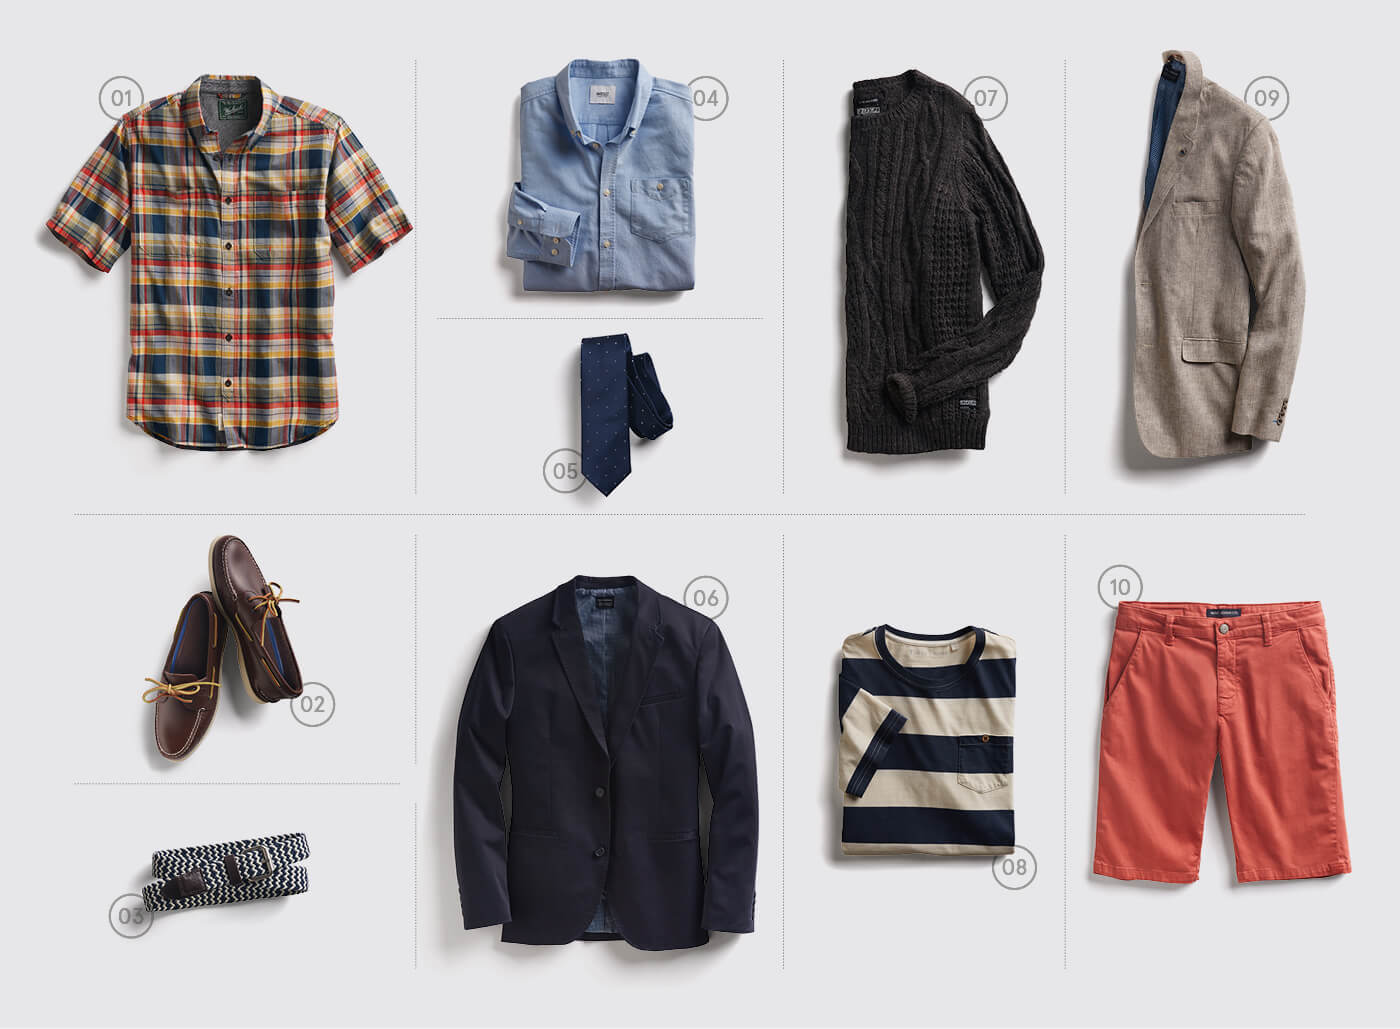 158a03bfe25bf1 The 10 Elements of Preppy Style | Stitch Fix Men